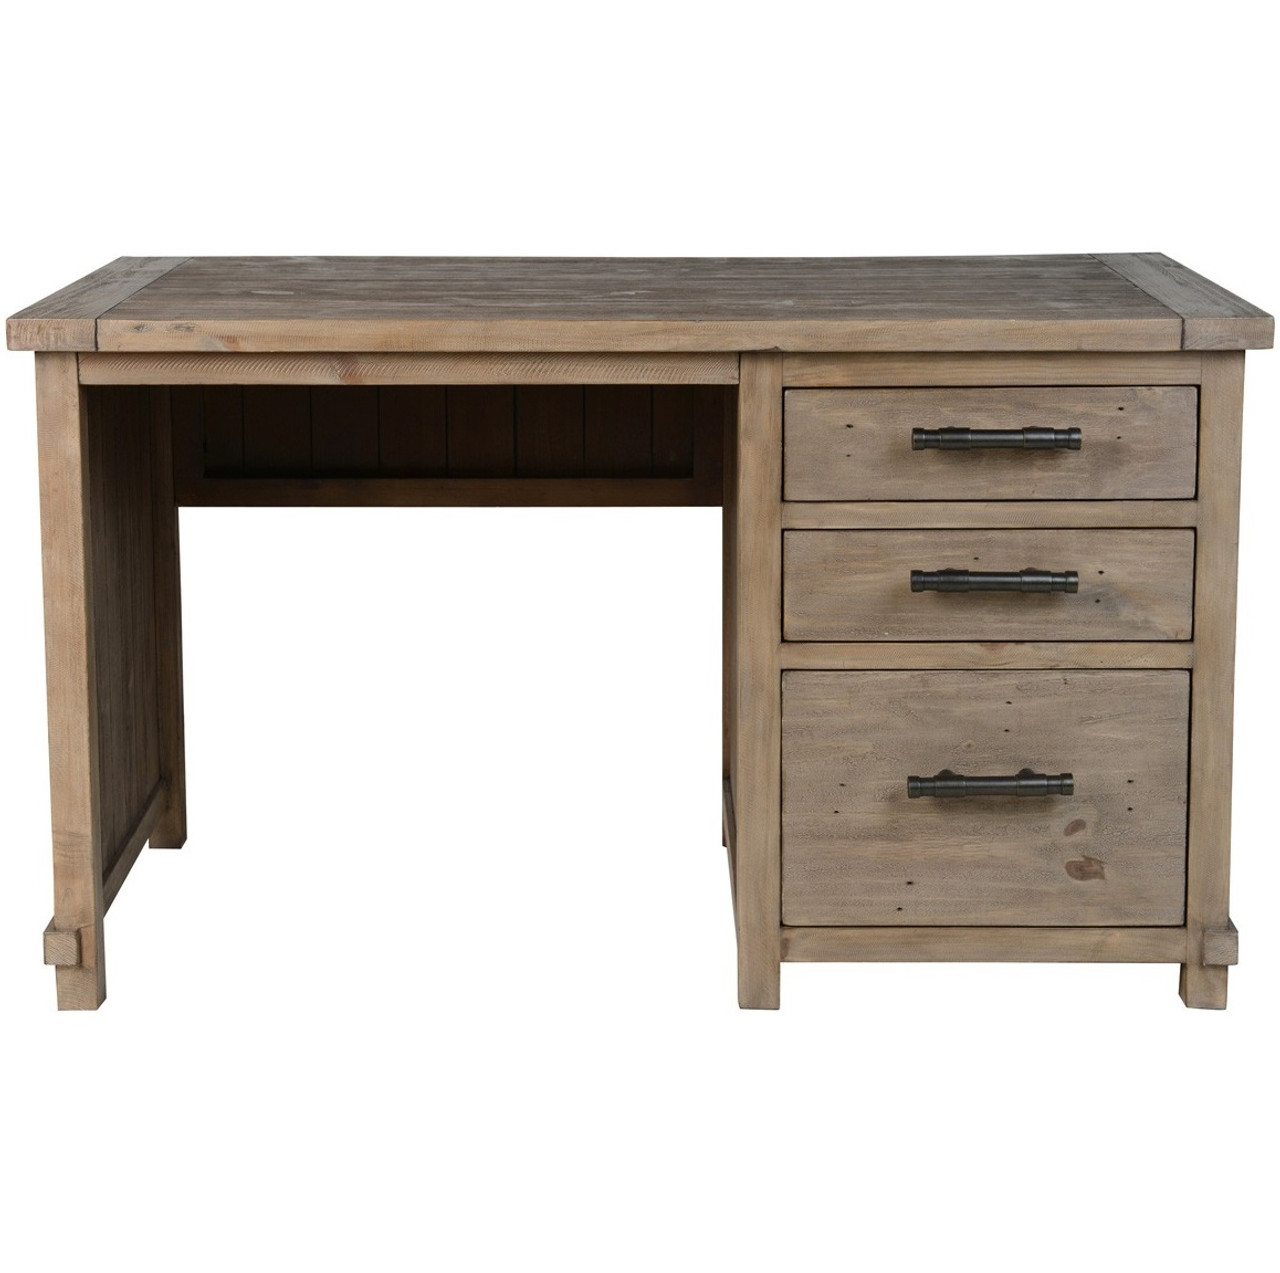 Country French Dining Room Tables Farmhouse Reclaimed Wood Desk With File Storage 54 Quot Zin Home